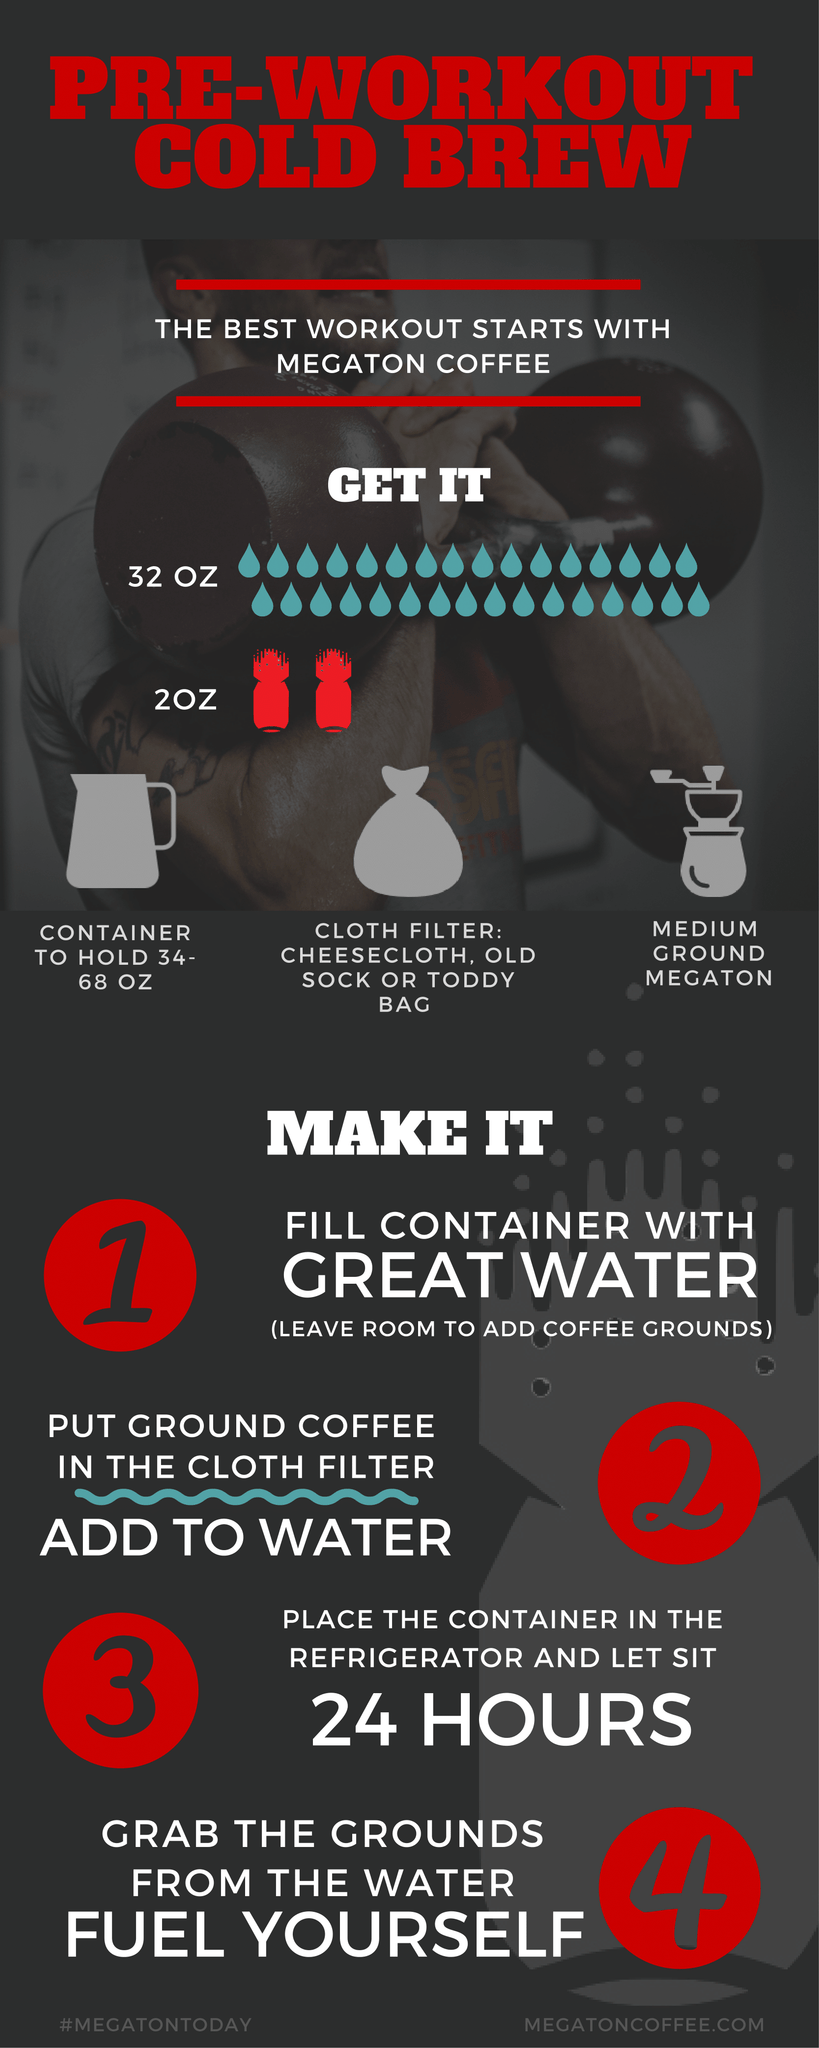 Megaton Coffee_Pre Workout_Cold Brew Guide_High Caffeine